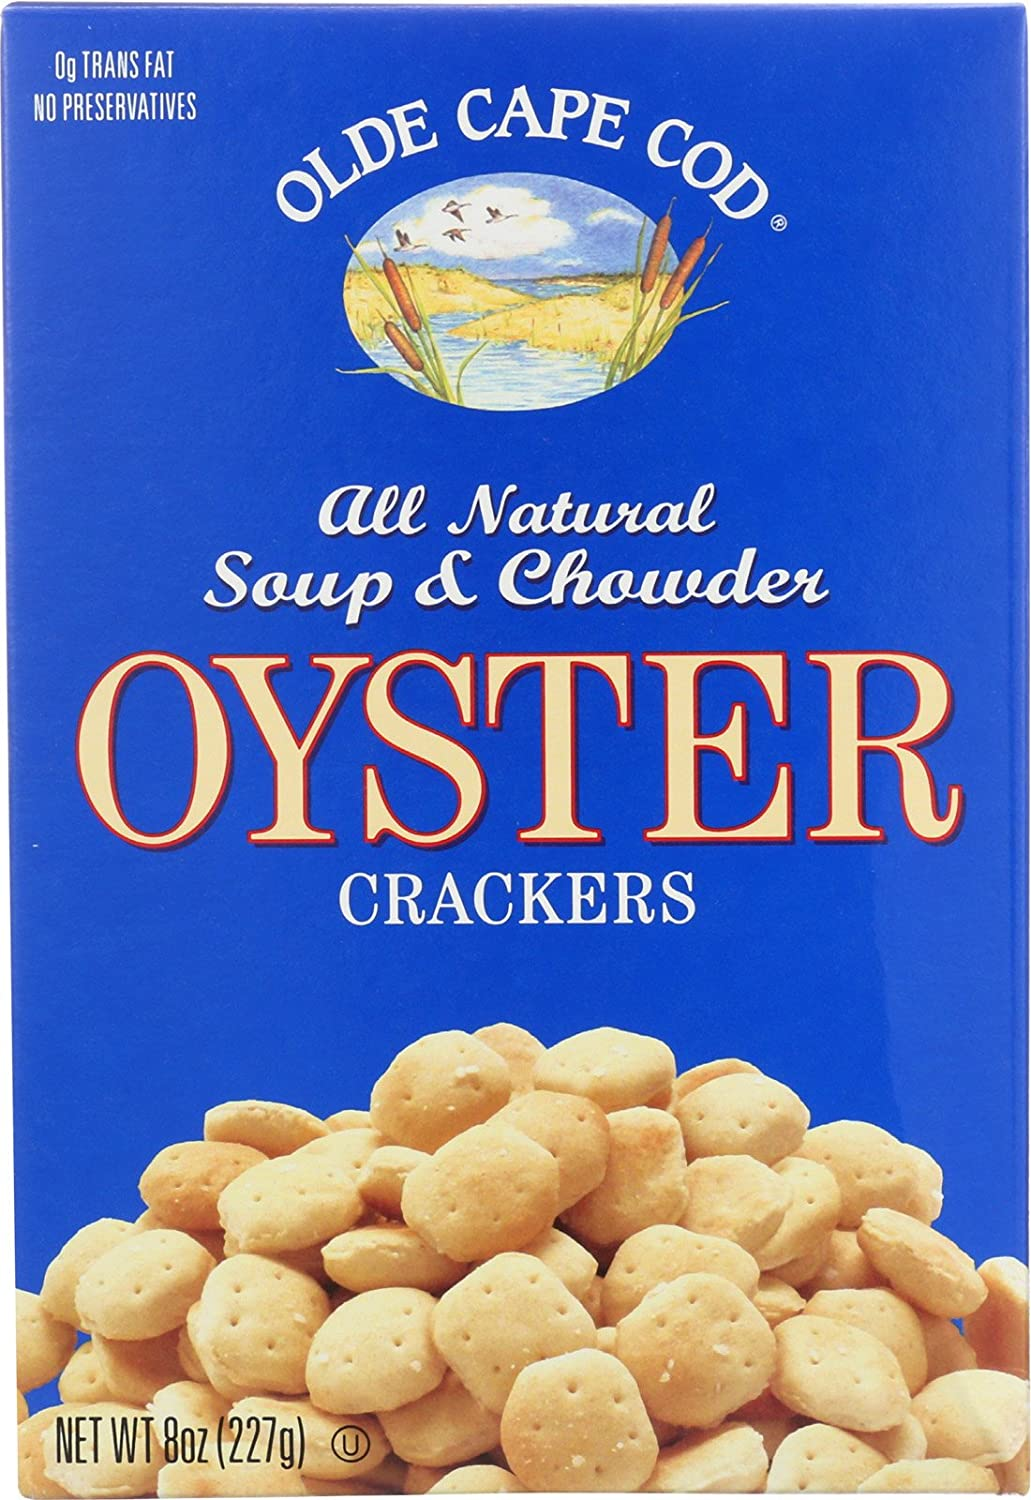 Westminster Cracker Co. Oyster Crackers, Transfat Free 8 oz. (Pack of 12) Olde Cape Cod